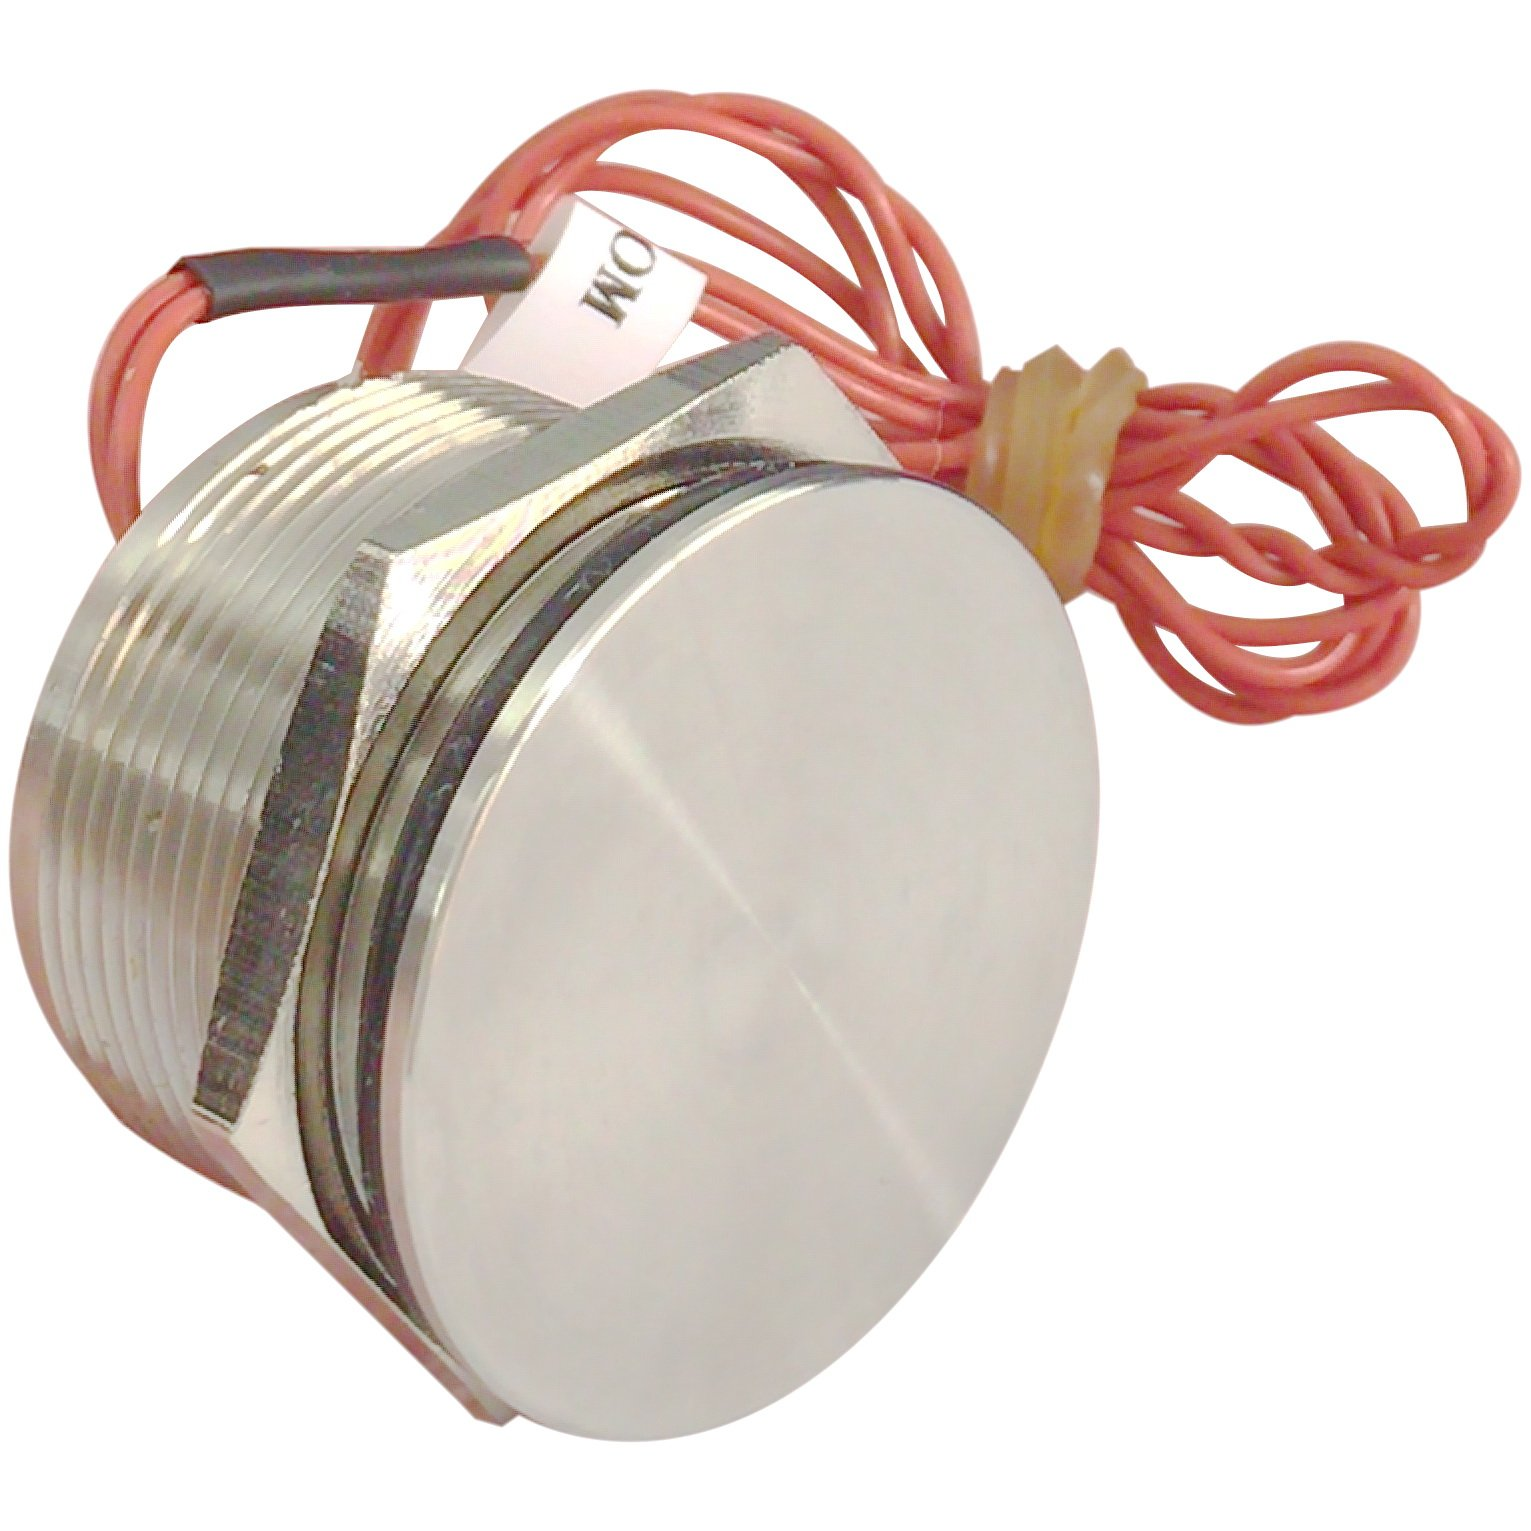 Generic 25mm Stainless Steel Momentary Piezo Switch with Flat Head